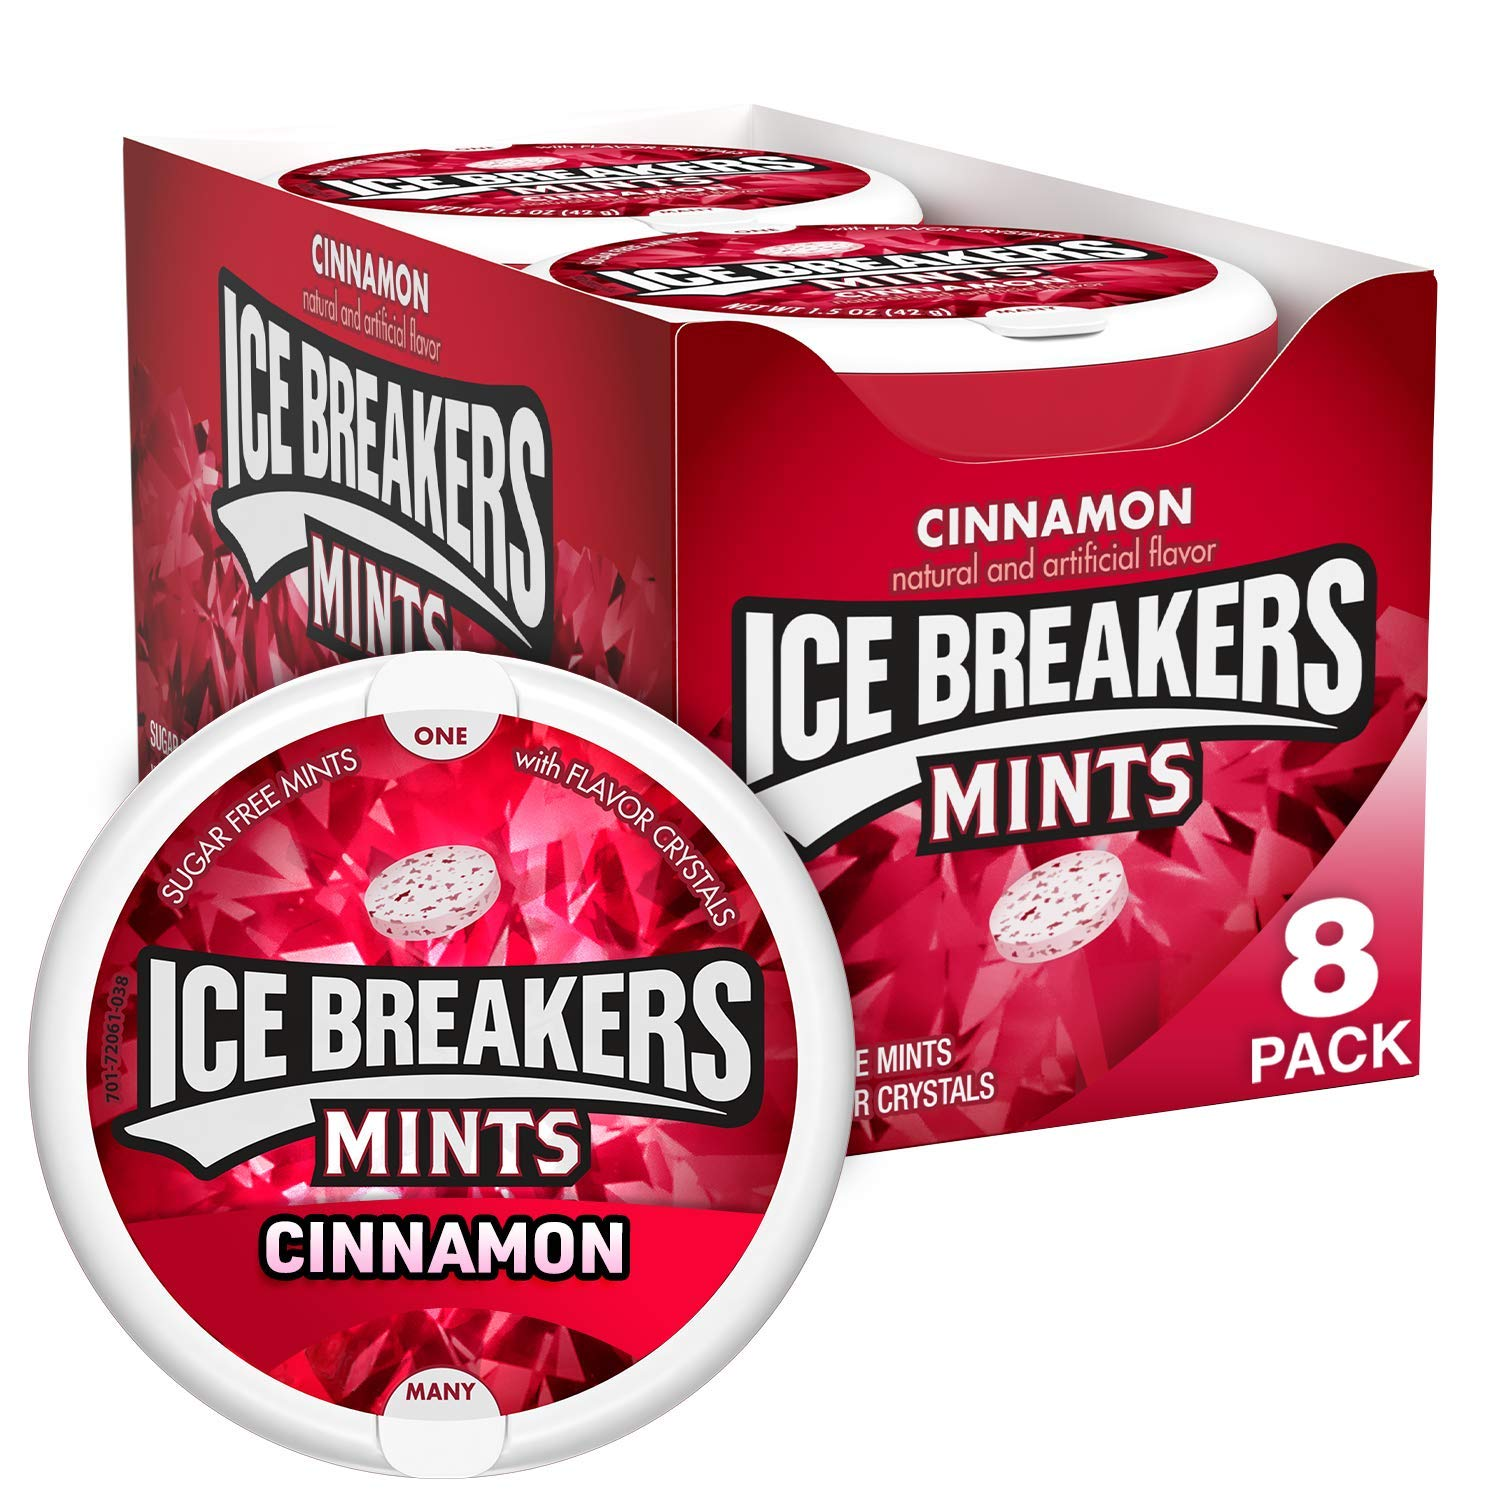 ICE BREAKERS Cinnamon Flavored Sugar Free Breath Mints, Bulk Mint Candy, 1.5 oz Container (8 ct)